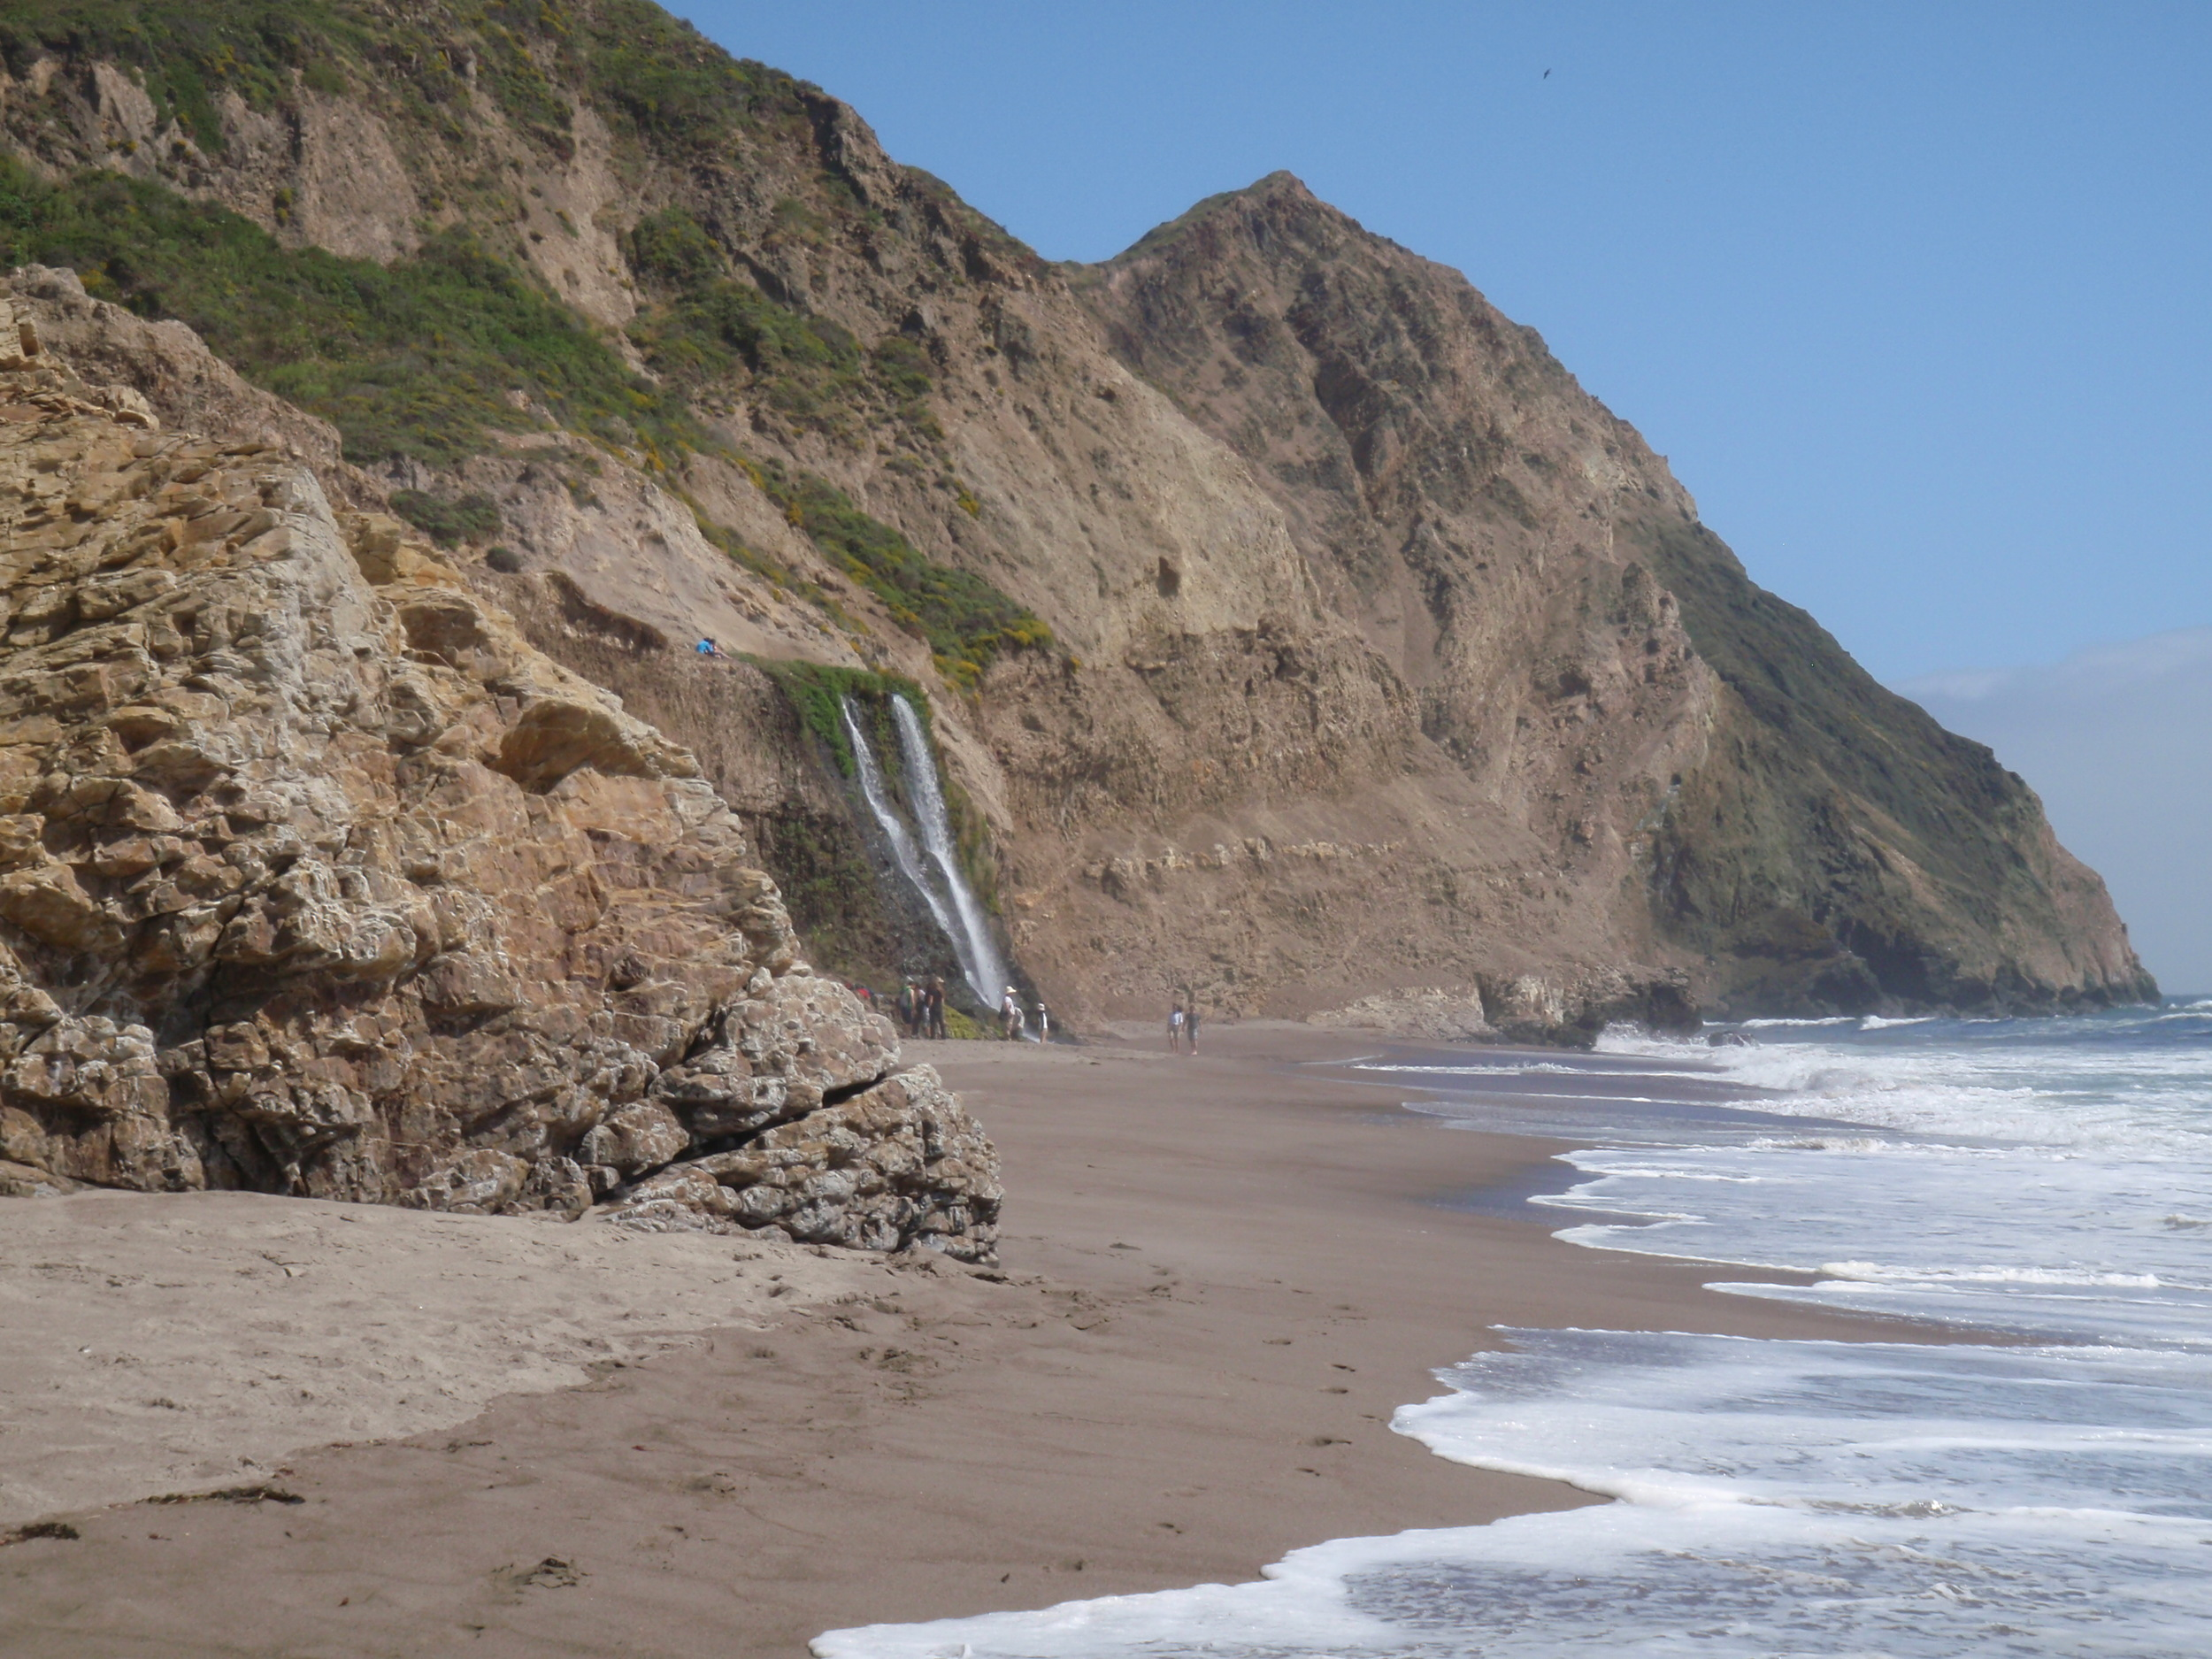 Pt Reyes Natl Seashore | July 2011